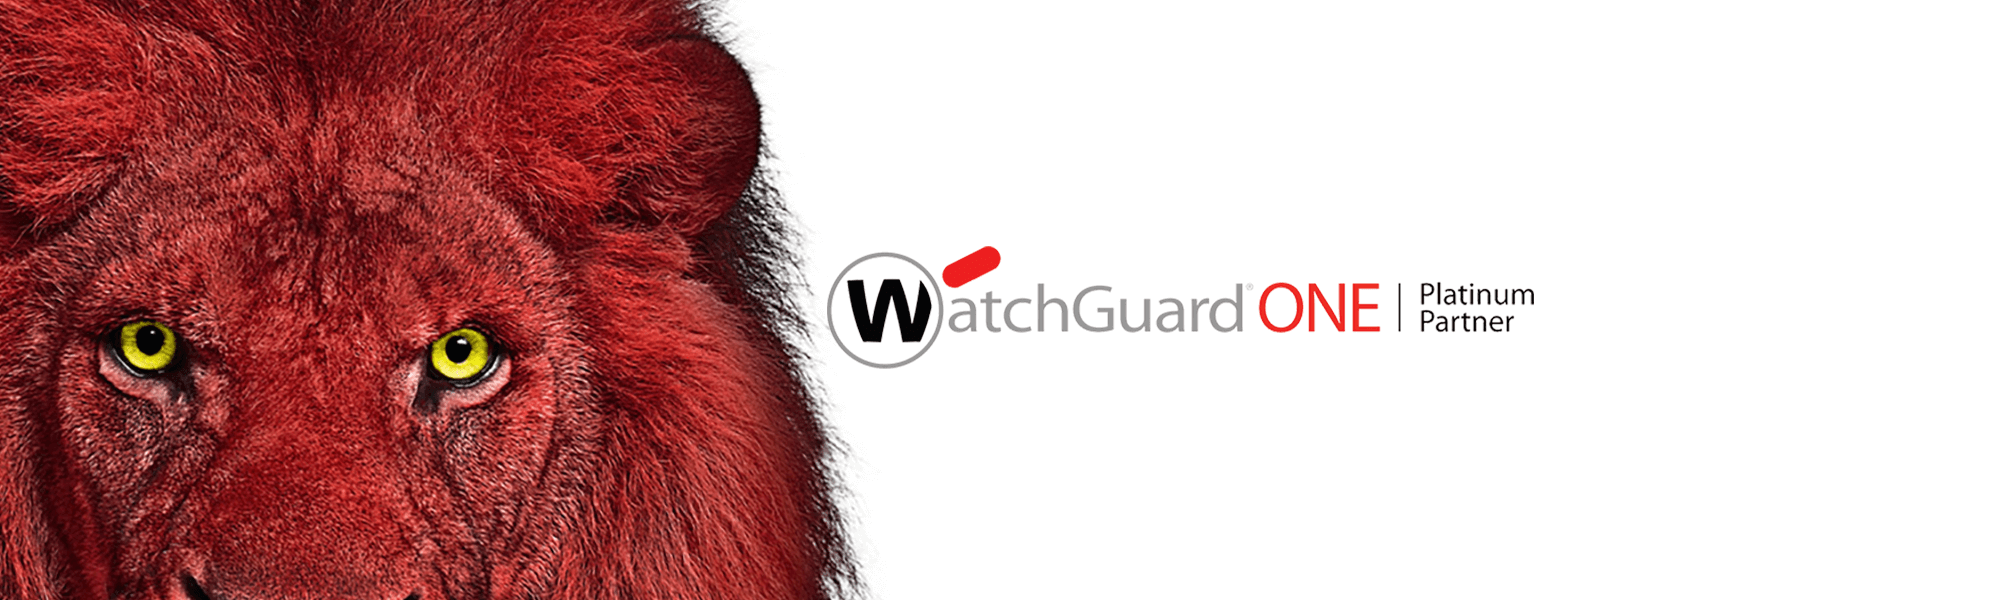 watchguard_platinum1 Watchguard Platinum Partner - PCS Group